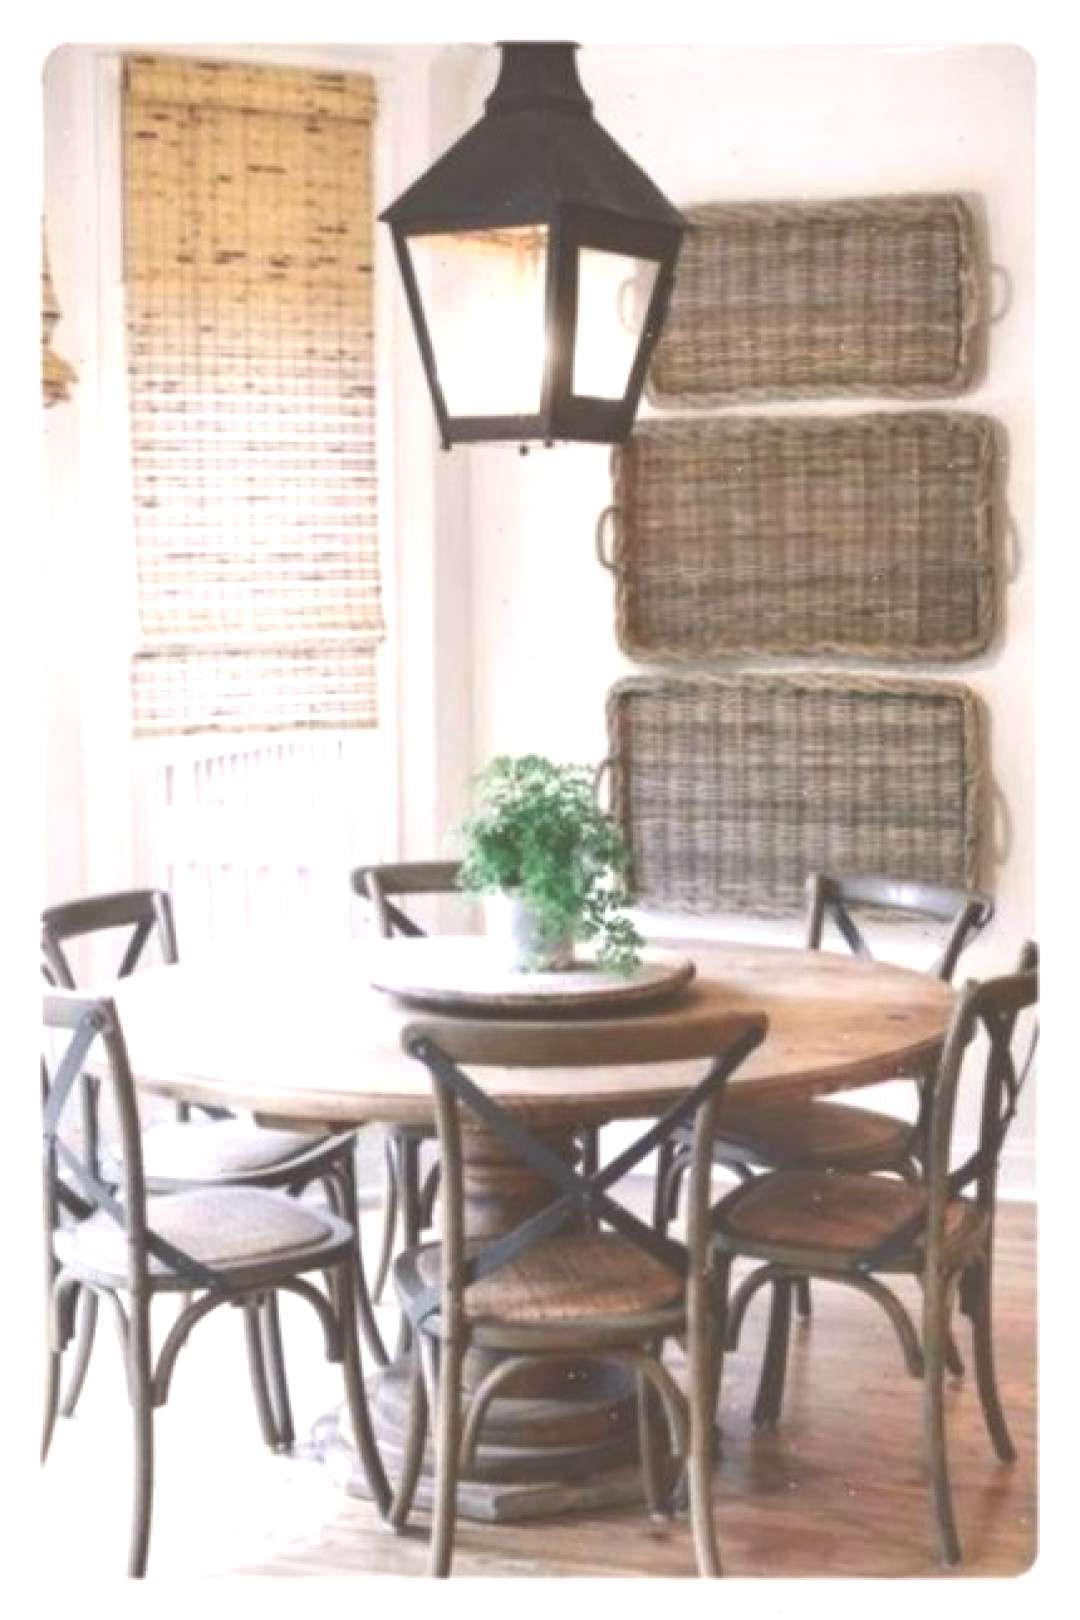 New farmhouse table dining room chairs breakfast nooks ideas ... - New farmhouse table dining room